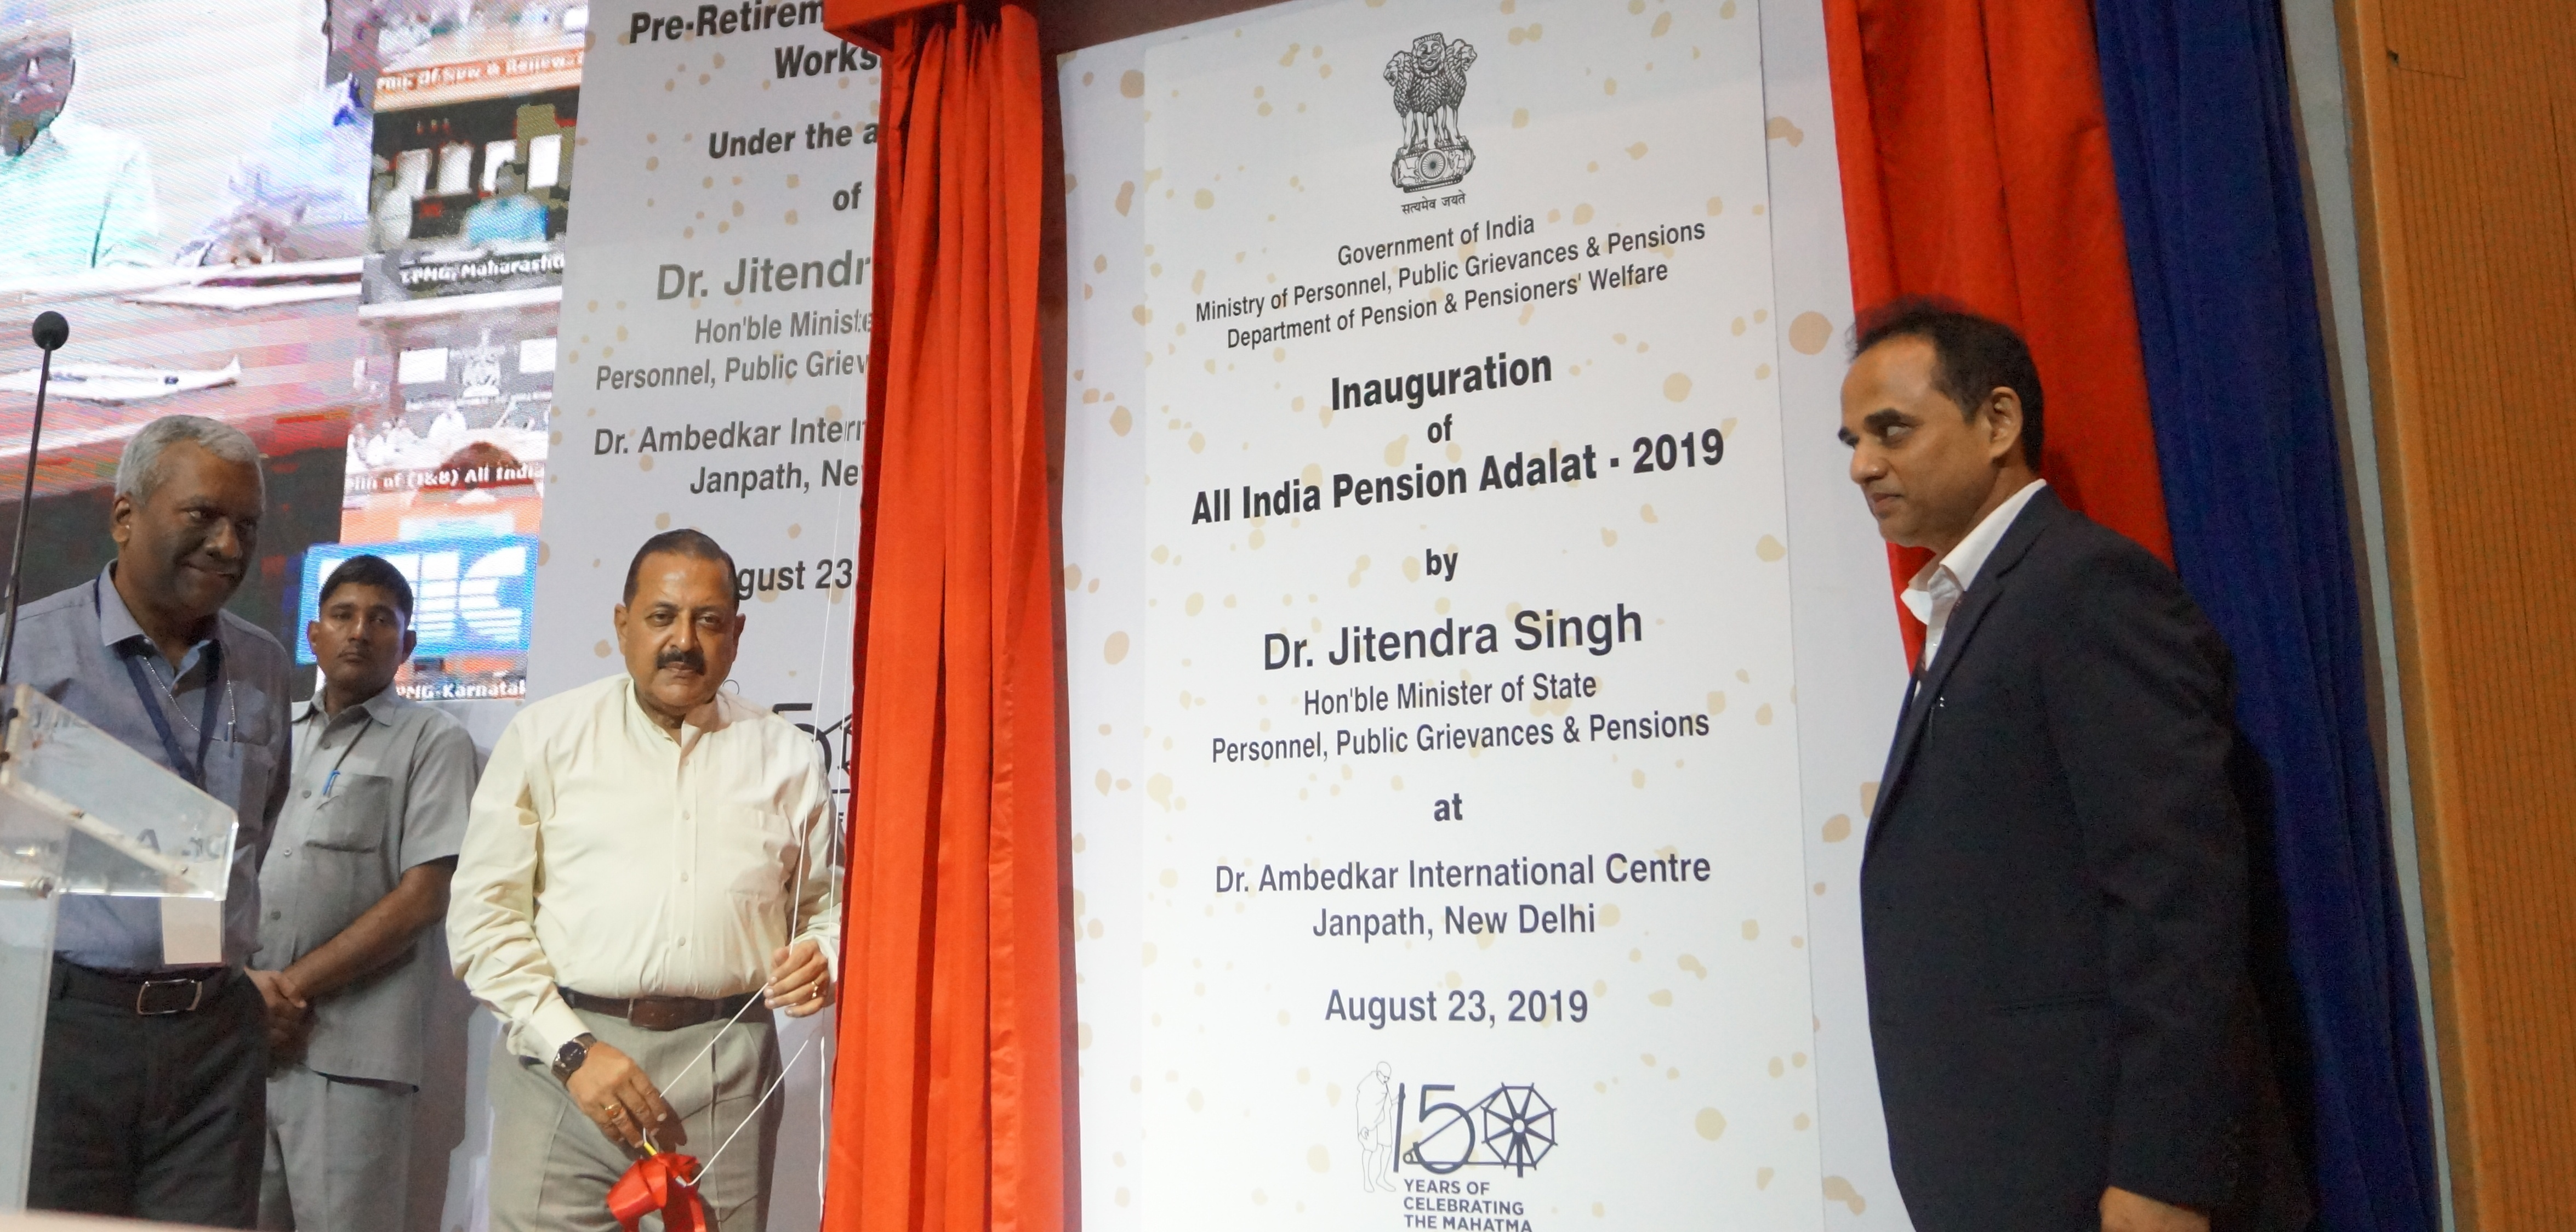 Inauguration of All India Pension Adalat, Anubhav Awards 2019 and Pre Retirement Counselling Workshop